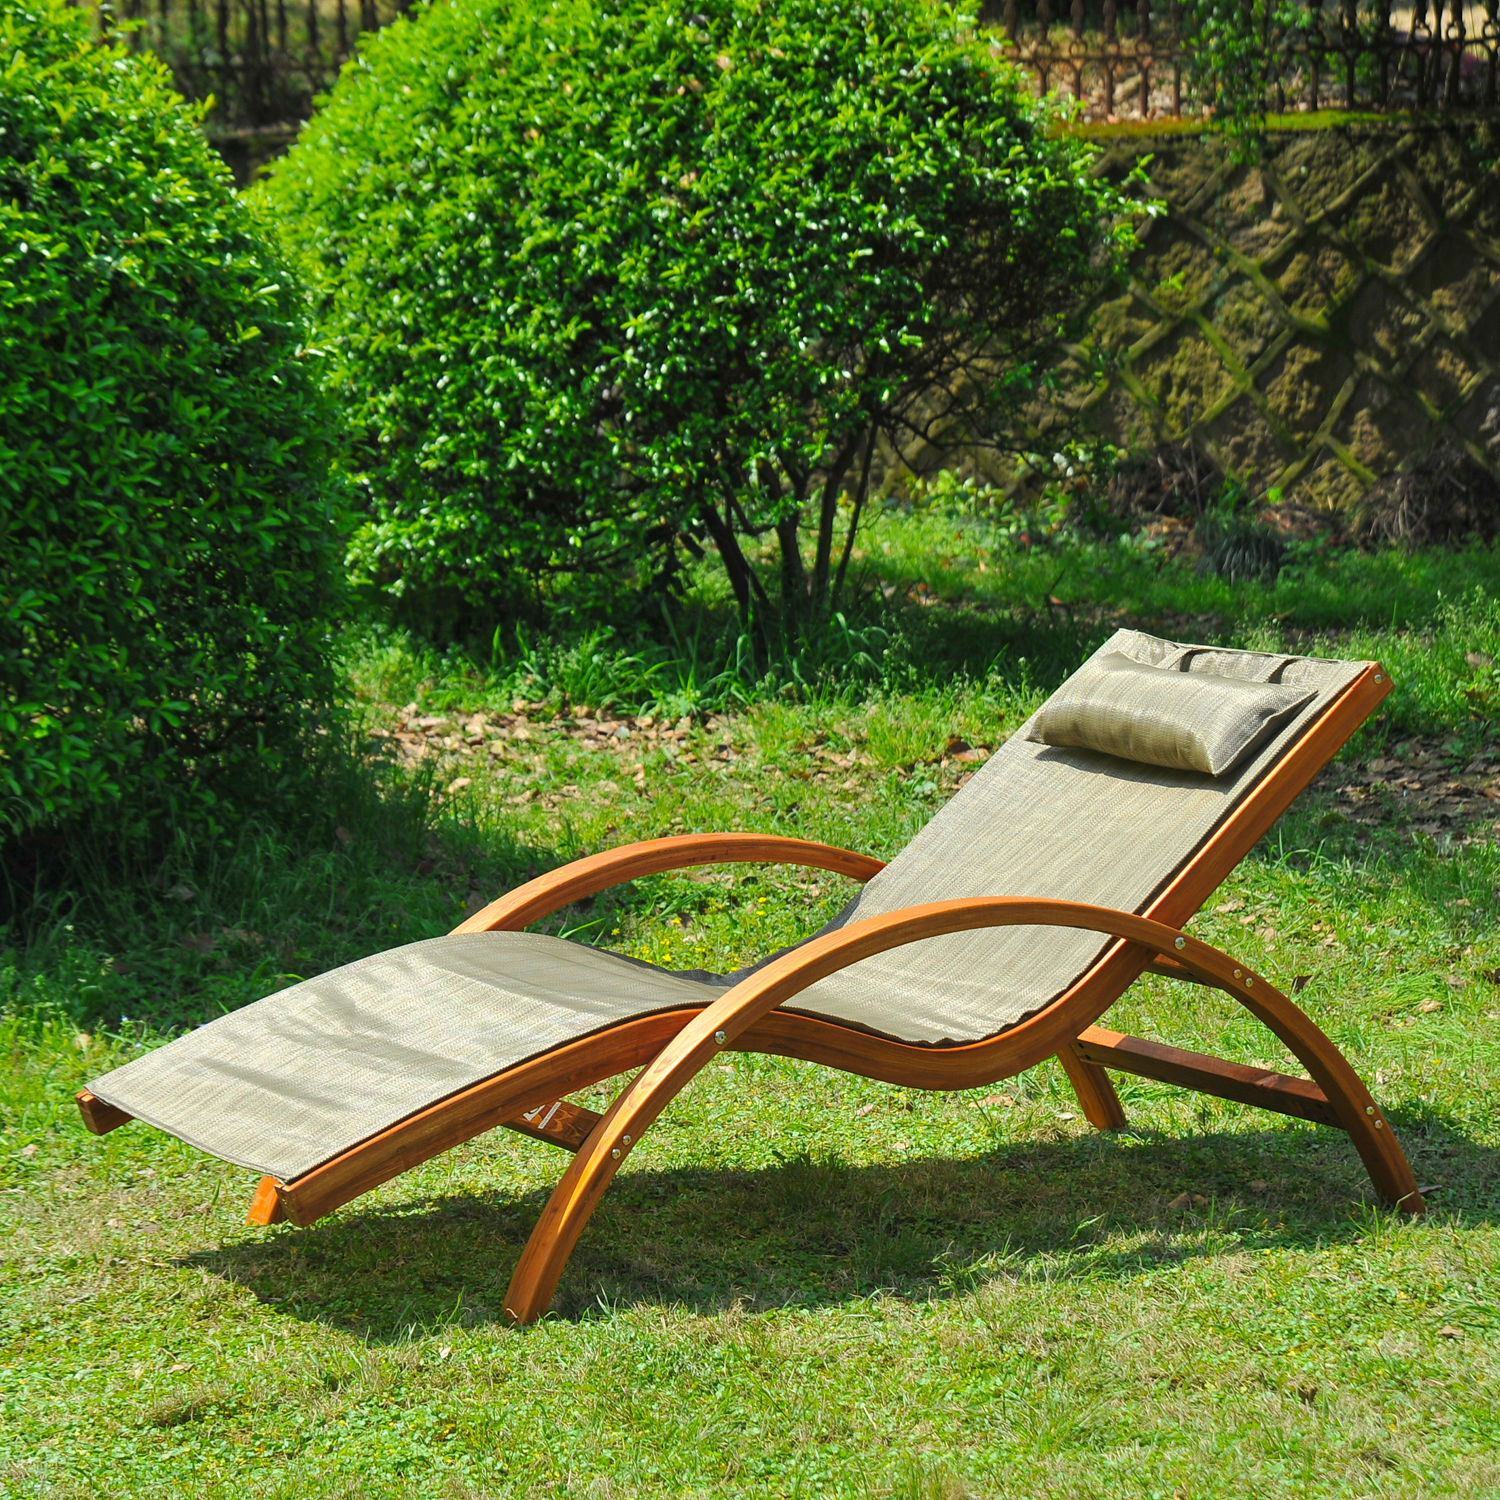 outdoor chairs best regard cushion black to lounger mesh accent resin chaise green known furniture longue well outsunny lounge with